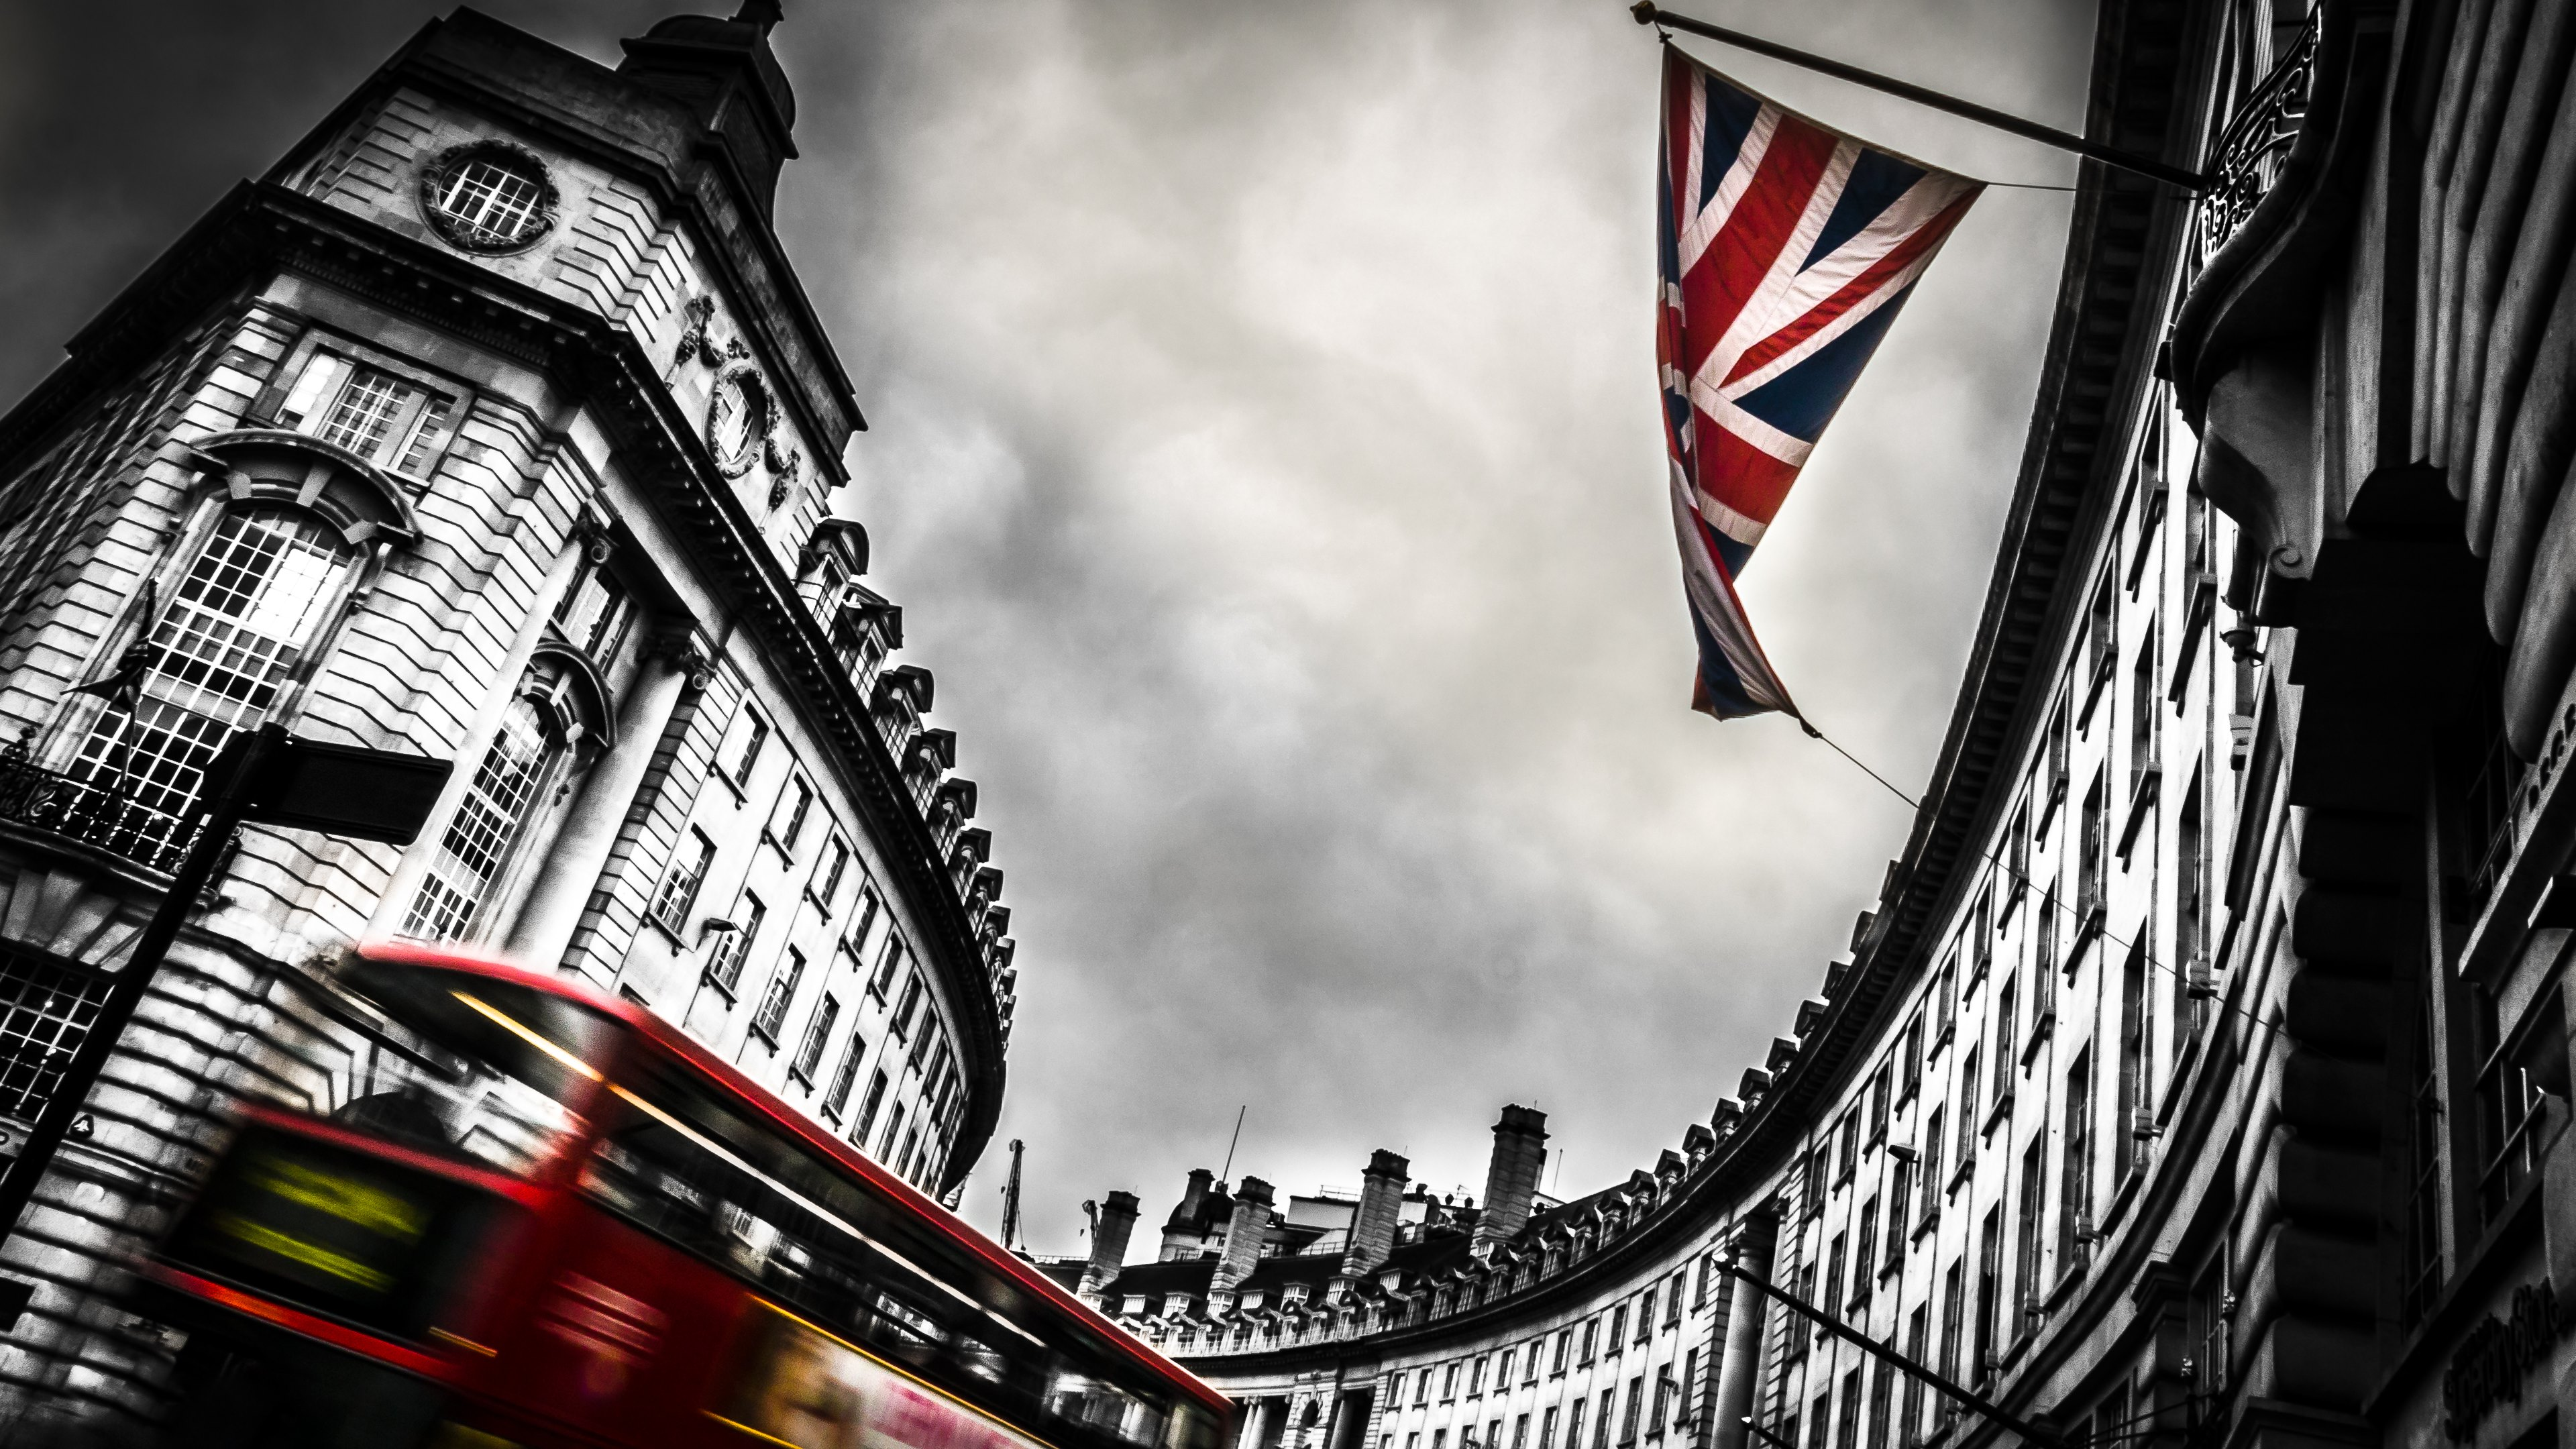 London Bus and England Flag Wallpapers · 4K HD Desktop Backgrounds